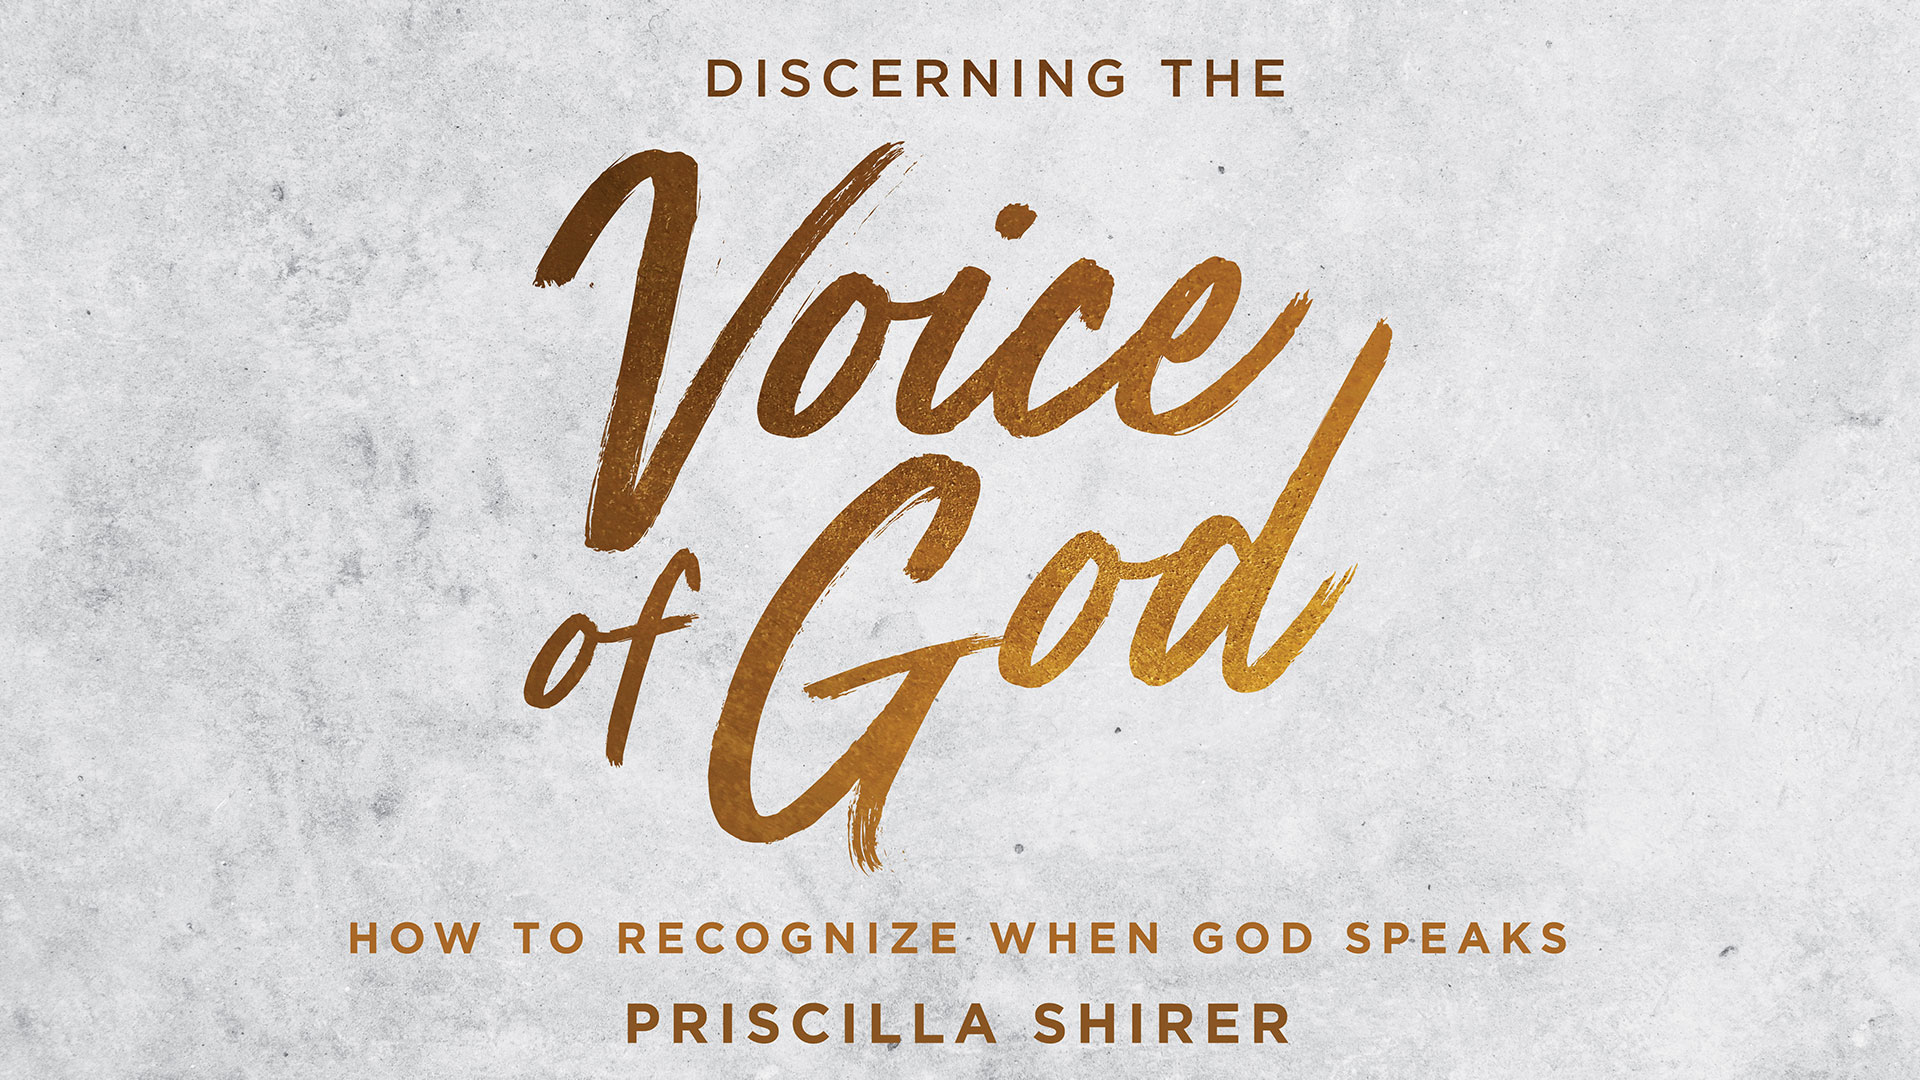 Discerning the voice of god